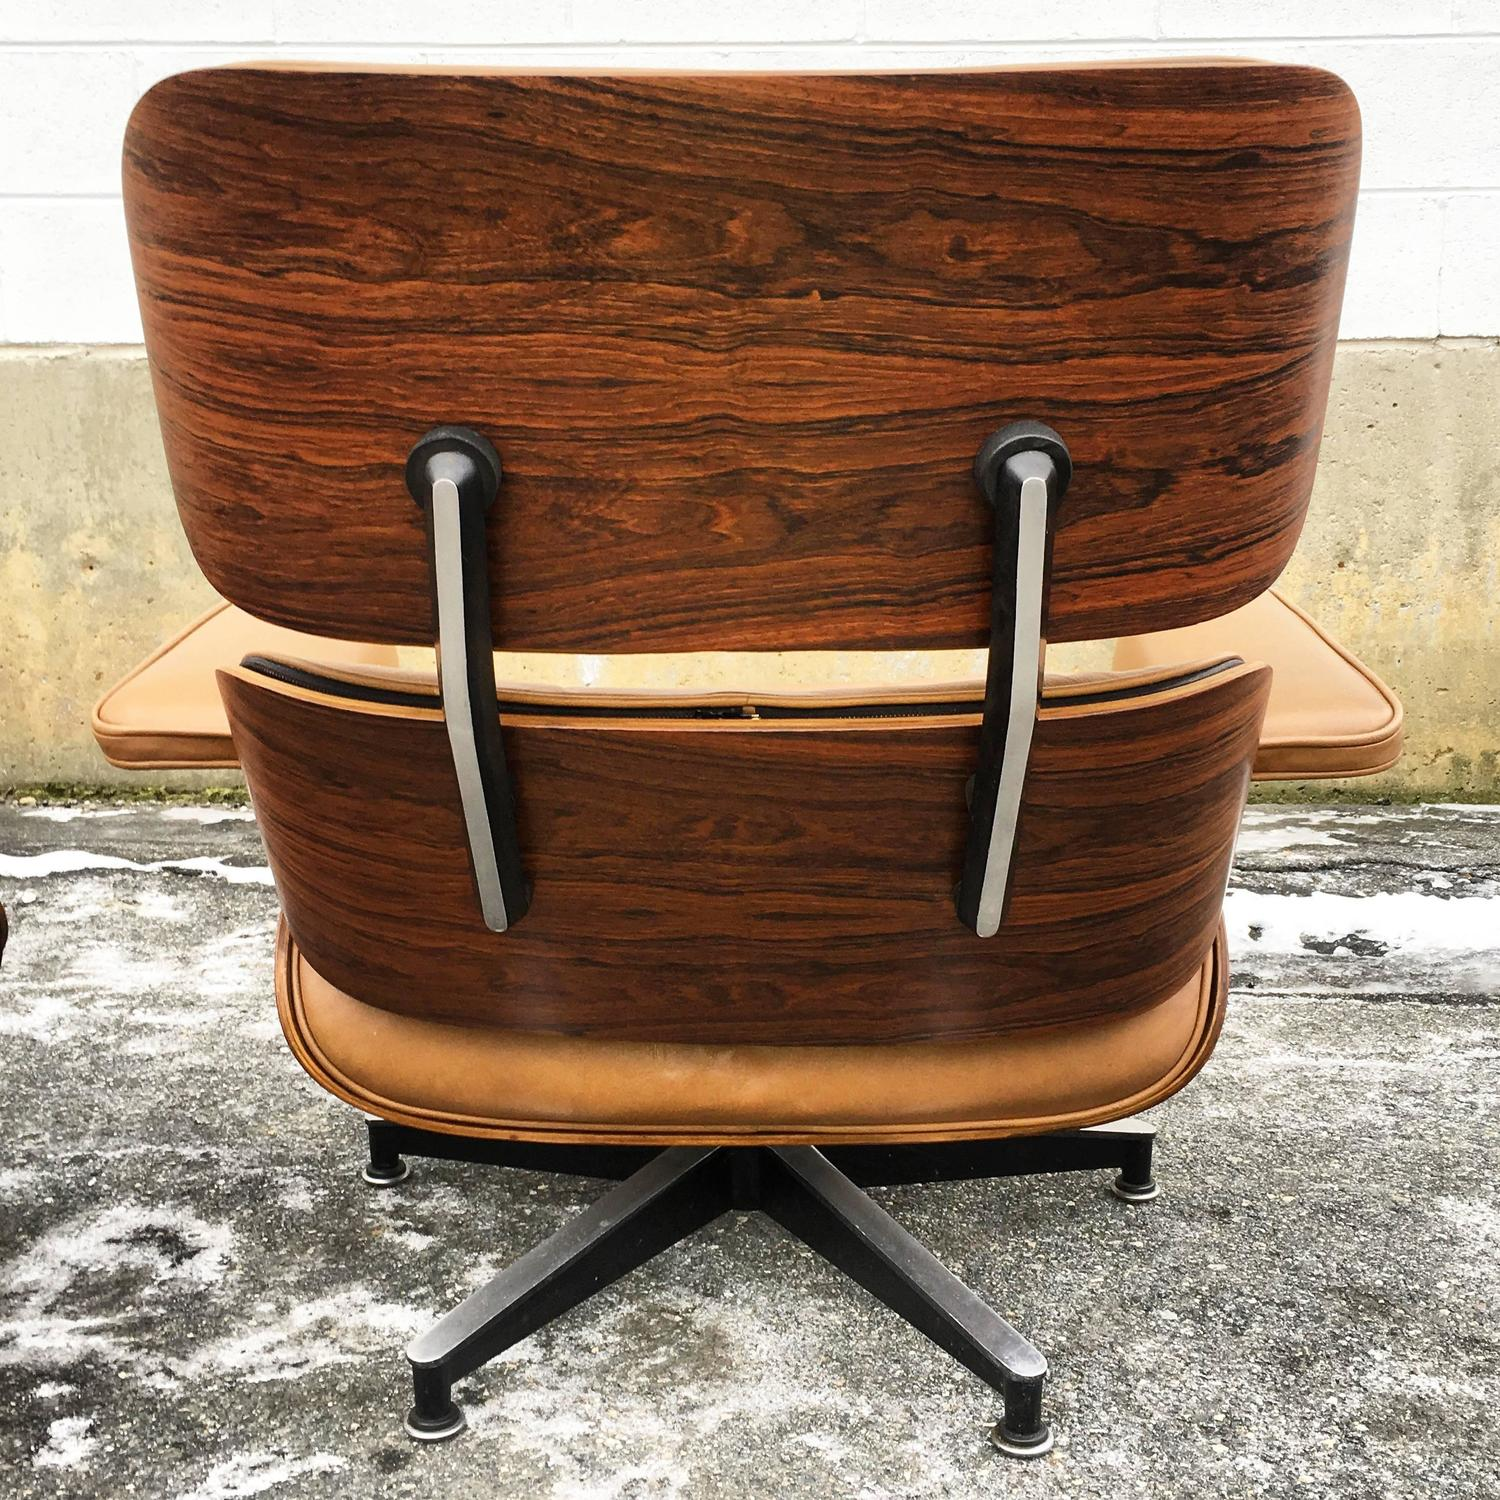 Tan Rosewood Herman Miller Eames Lounge Chair and Ottoman For Sale at 1stdibs